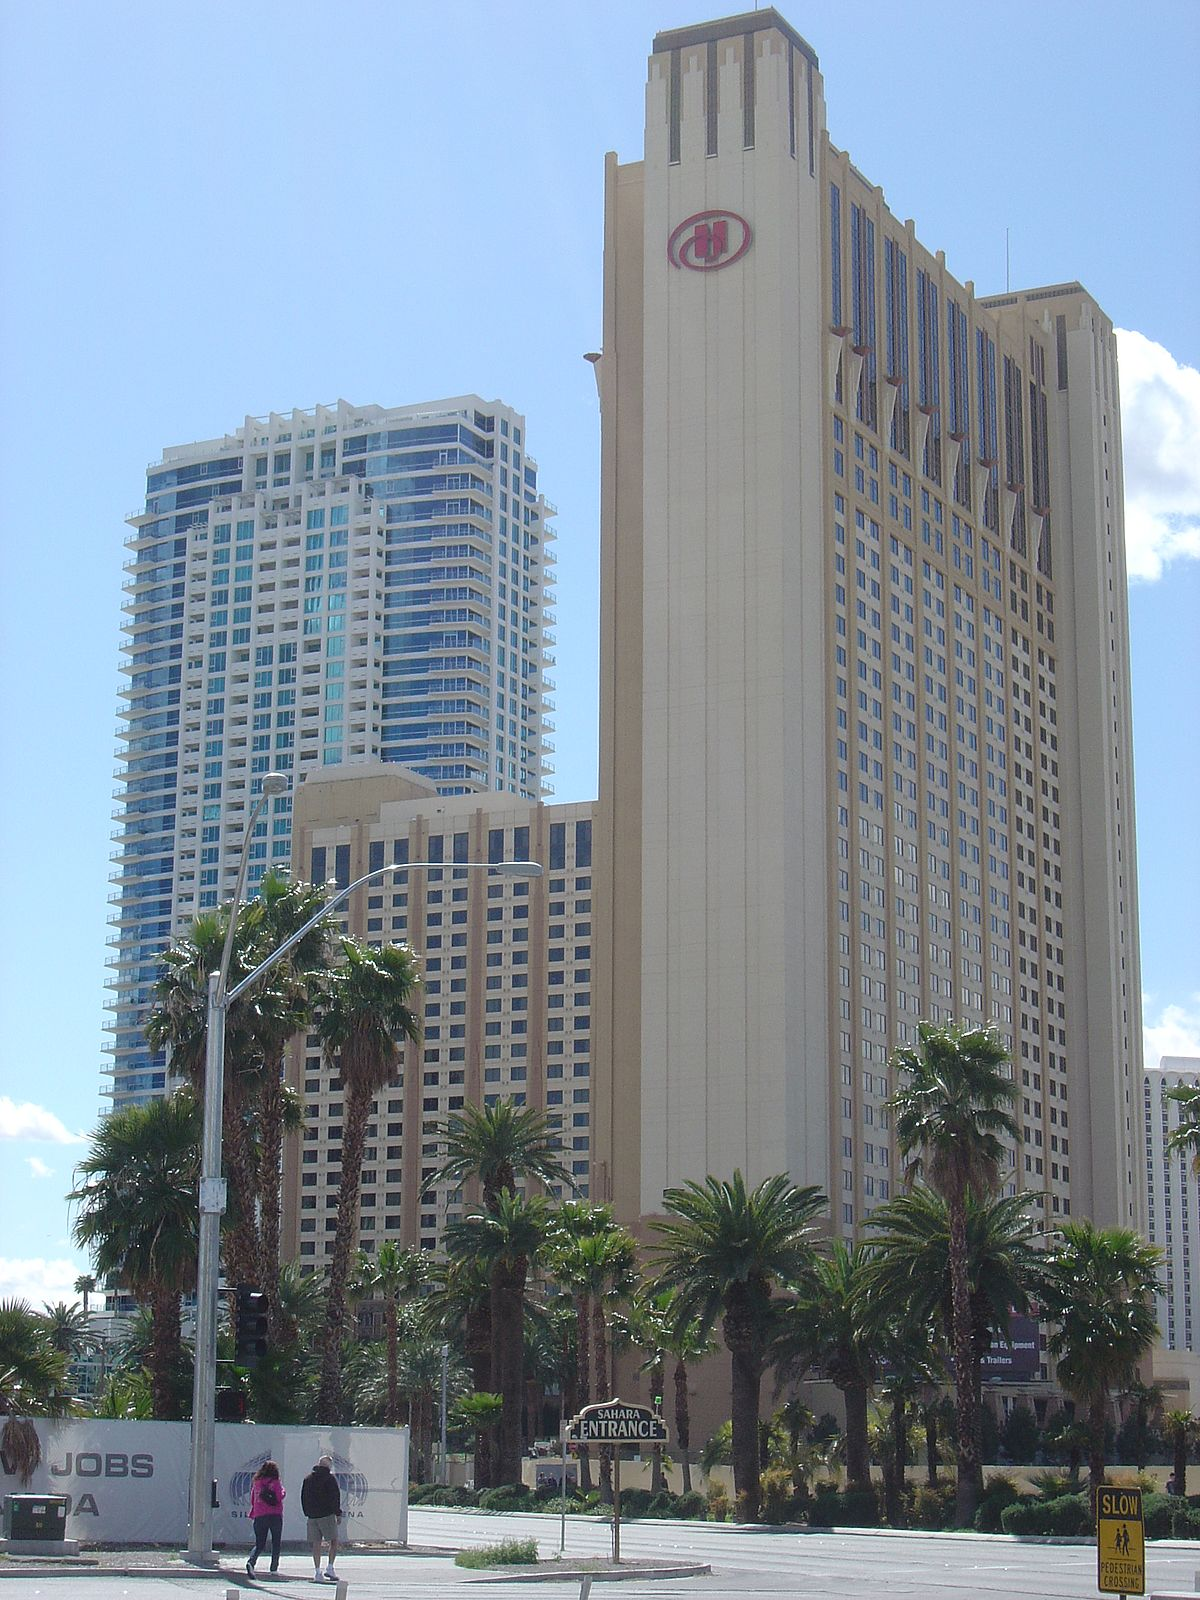 Hilton Grand Vacations Las Vegas Strip Hotel